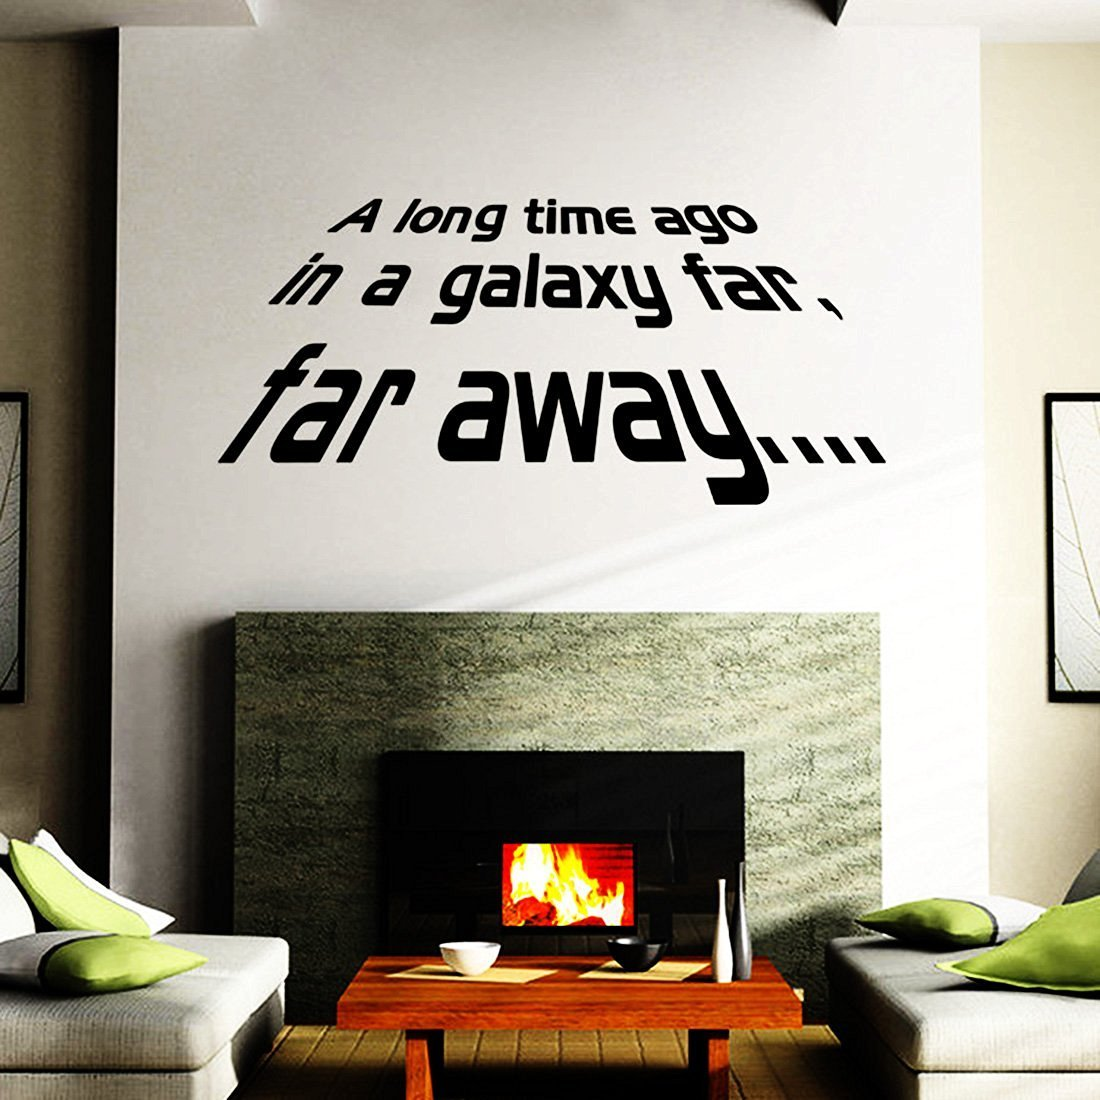 Buy A Long Time Ago In A Galaxy Far Far Away Sale Star Wars Themed Vinyl Wall Decal 10x12 Black In Cheap Price On Alibaba Com